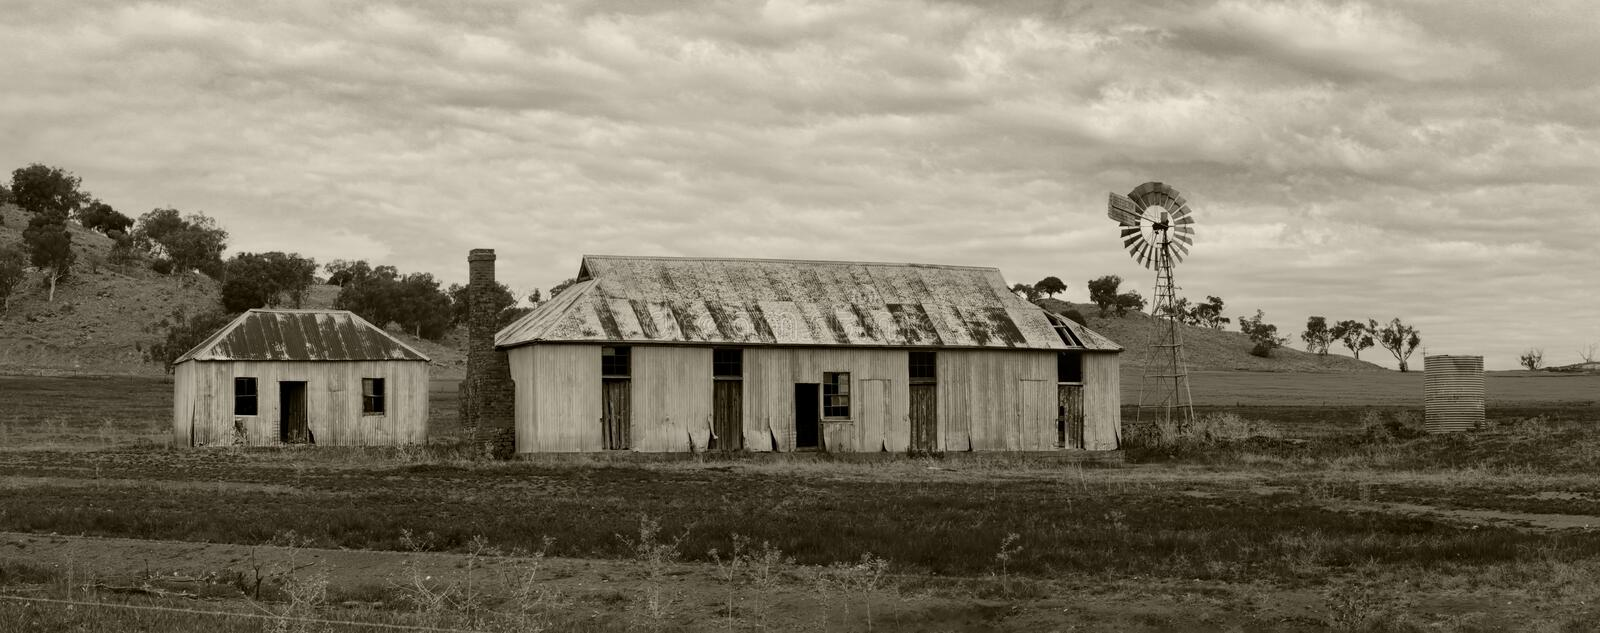 Rural farmlands windmill and outbuildings. Rural farmlands with rusty corrugated tin outbulldings sheds and windmill now in disrepair stock image